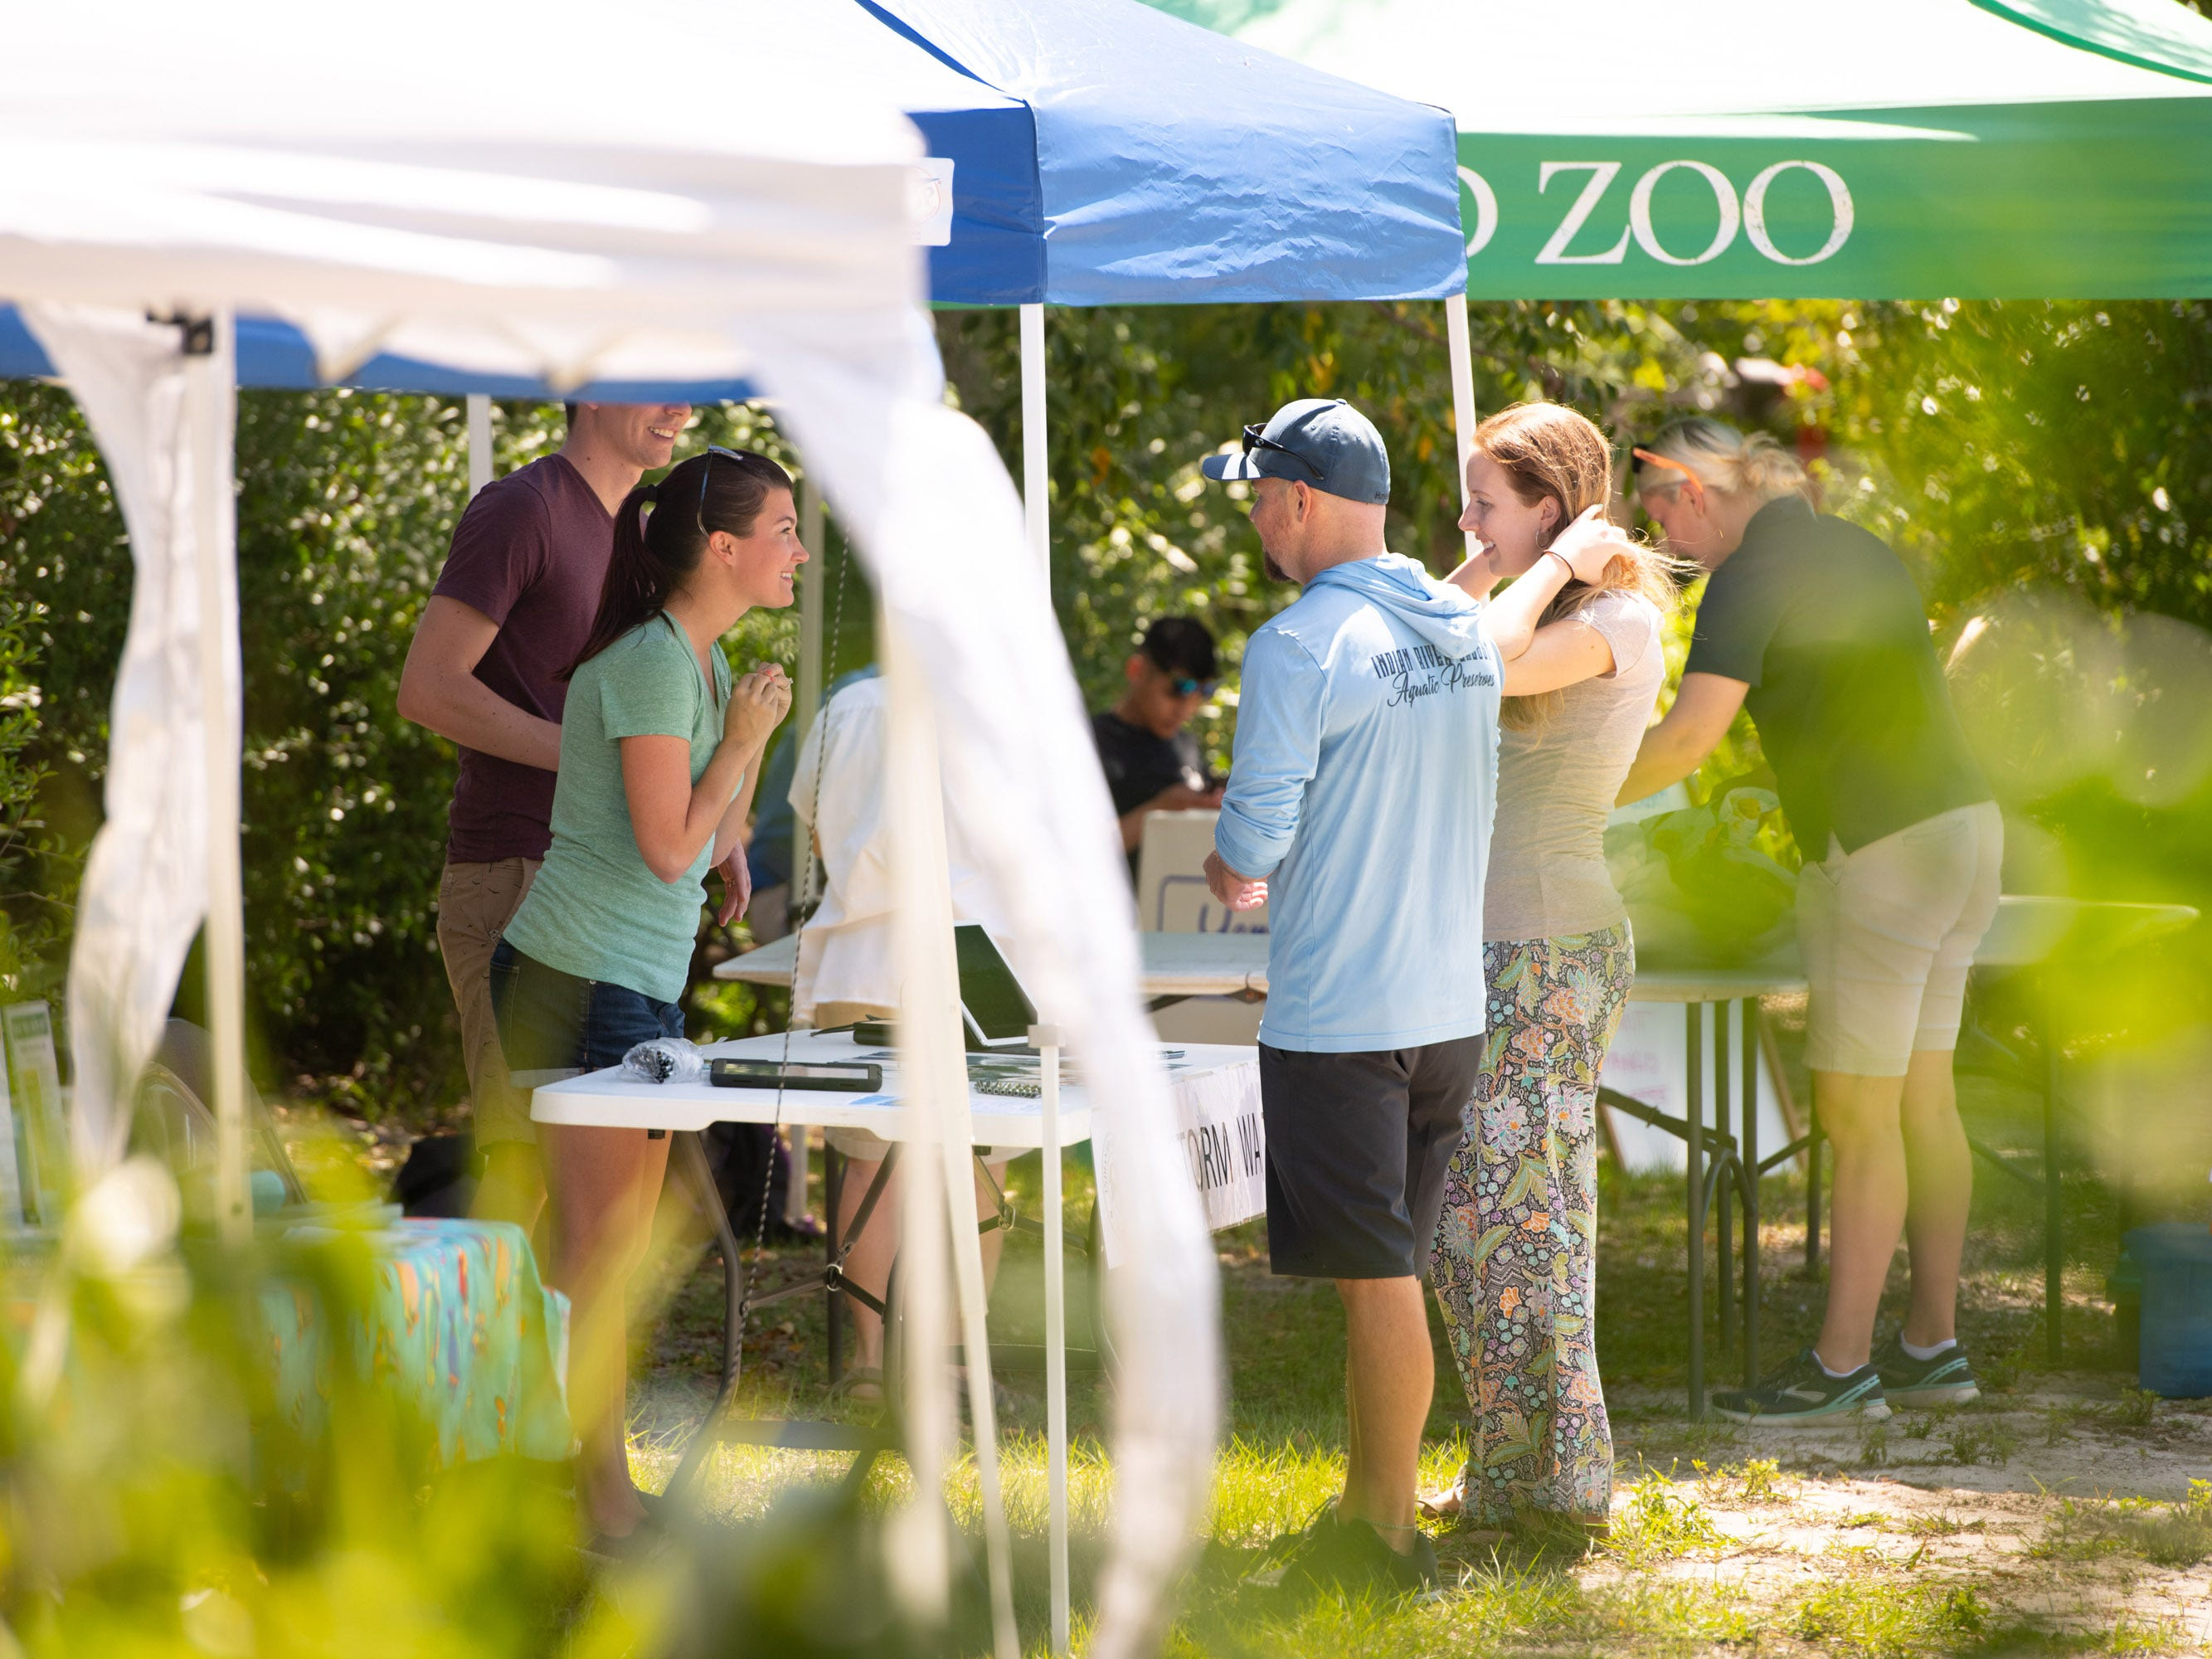 The Environmental Learning Center's first Citizen Science Day gave people a chance to be citizen scientists by meeting with environmental researchers looking for help with a variety of projects on Saturday, April 13, 2019, at The Environmental Learning Center in Wabasso.